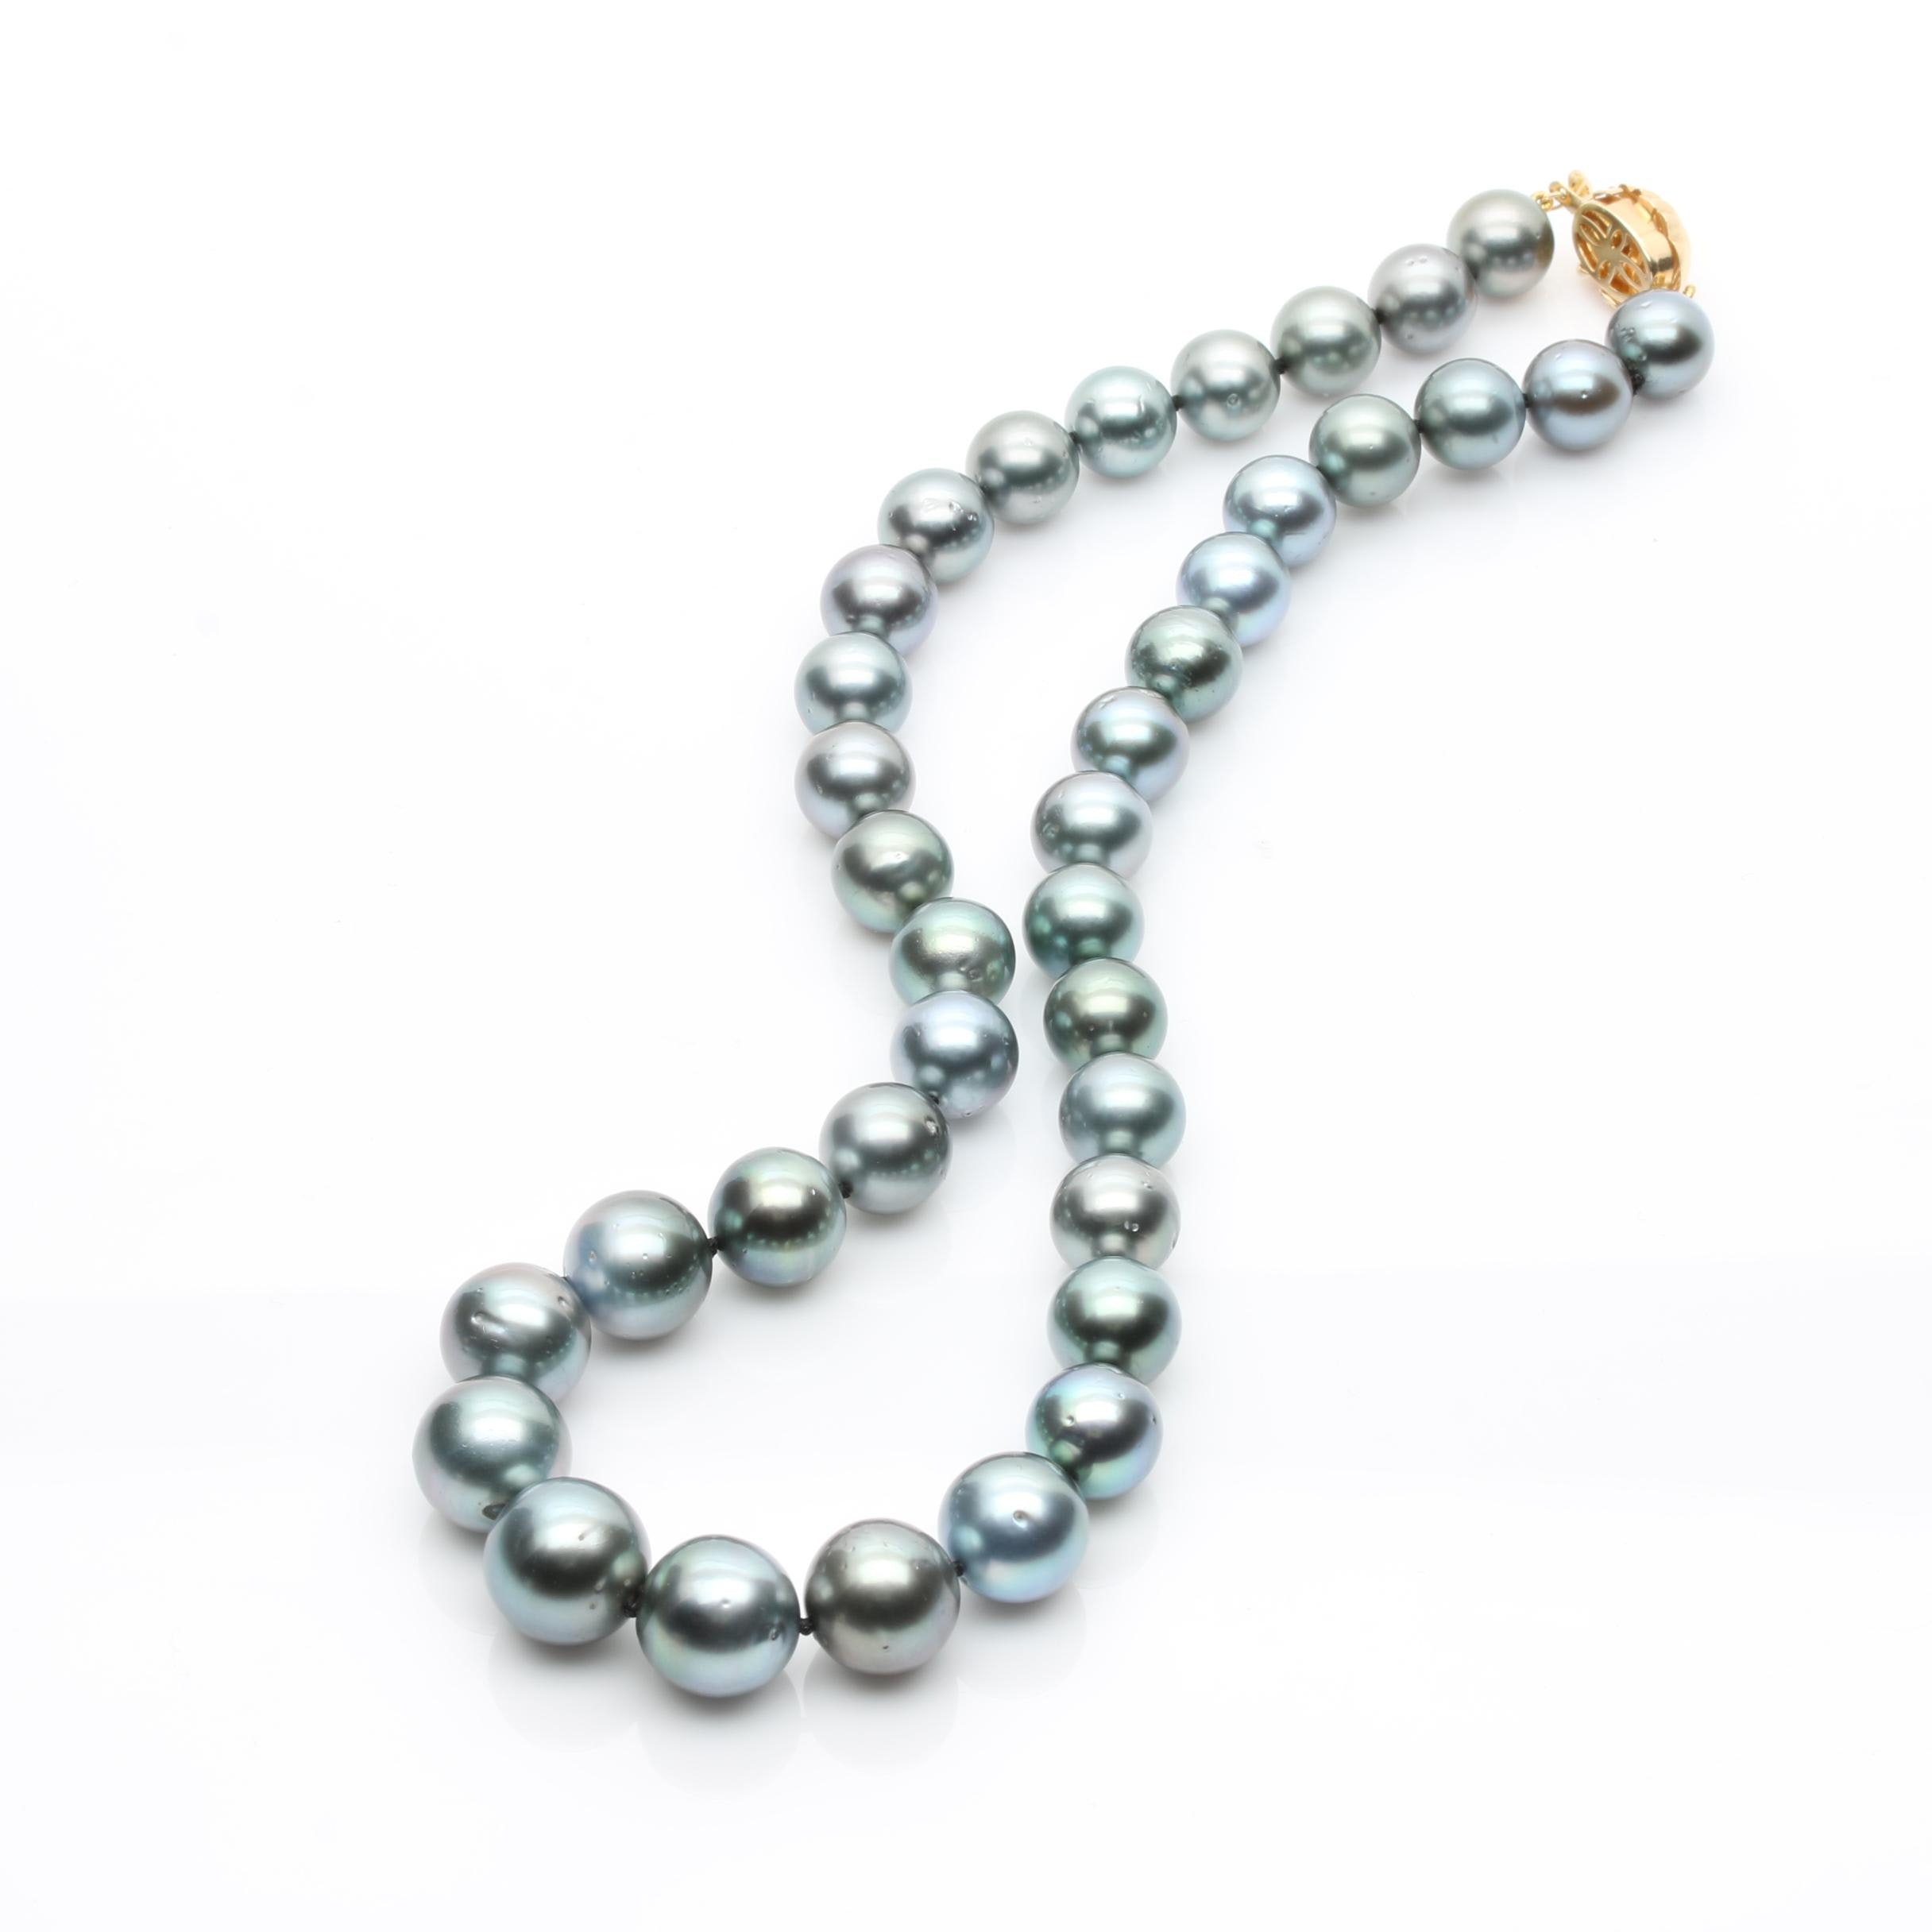 14K Yellow Gold Cultured Tahitian Pearl Necklace